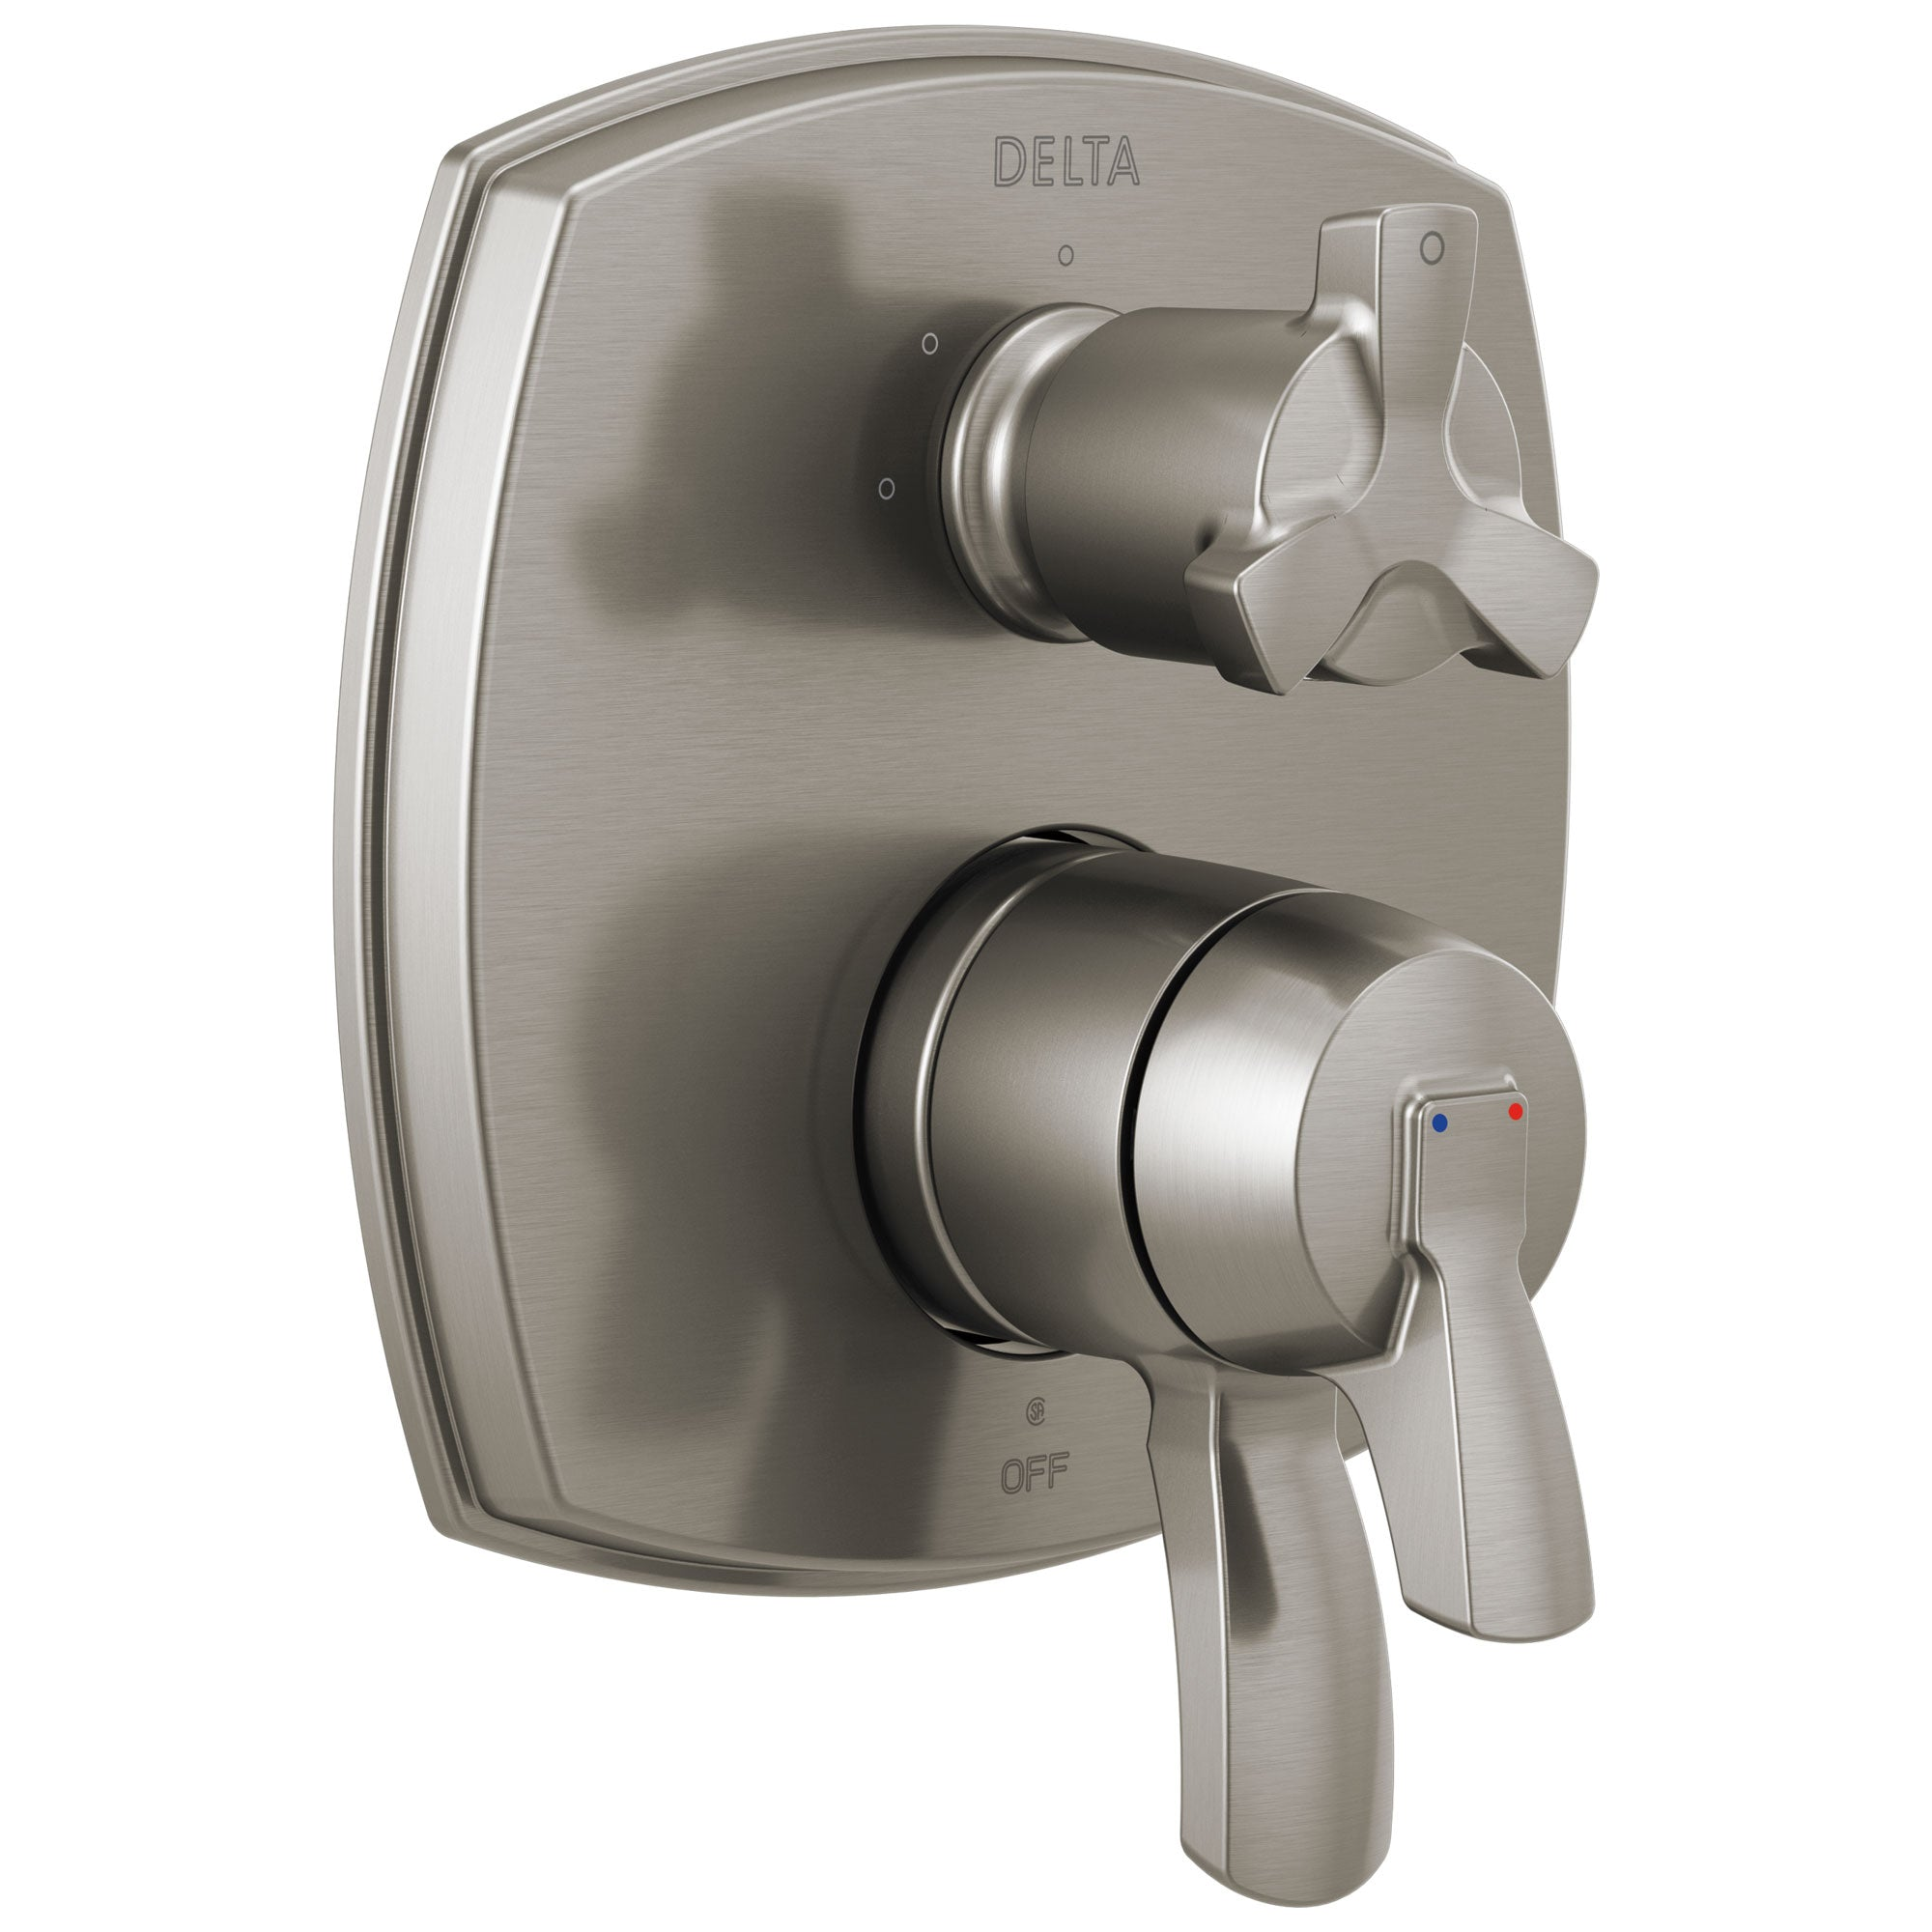 Delta Stryke Stainless Steel Finish 17 Series Integrated 3-Function Cross Handle Diverter Shower System Control Includes Valve and Handles D3724V